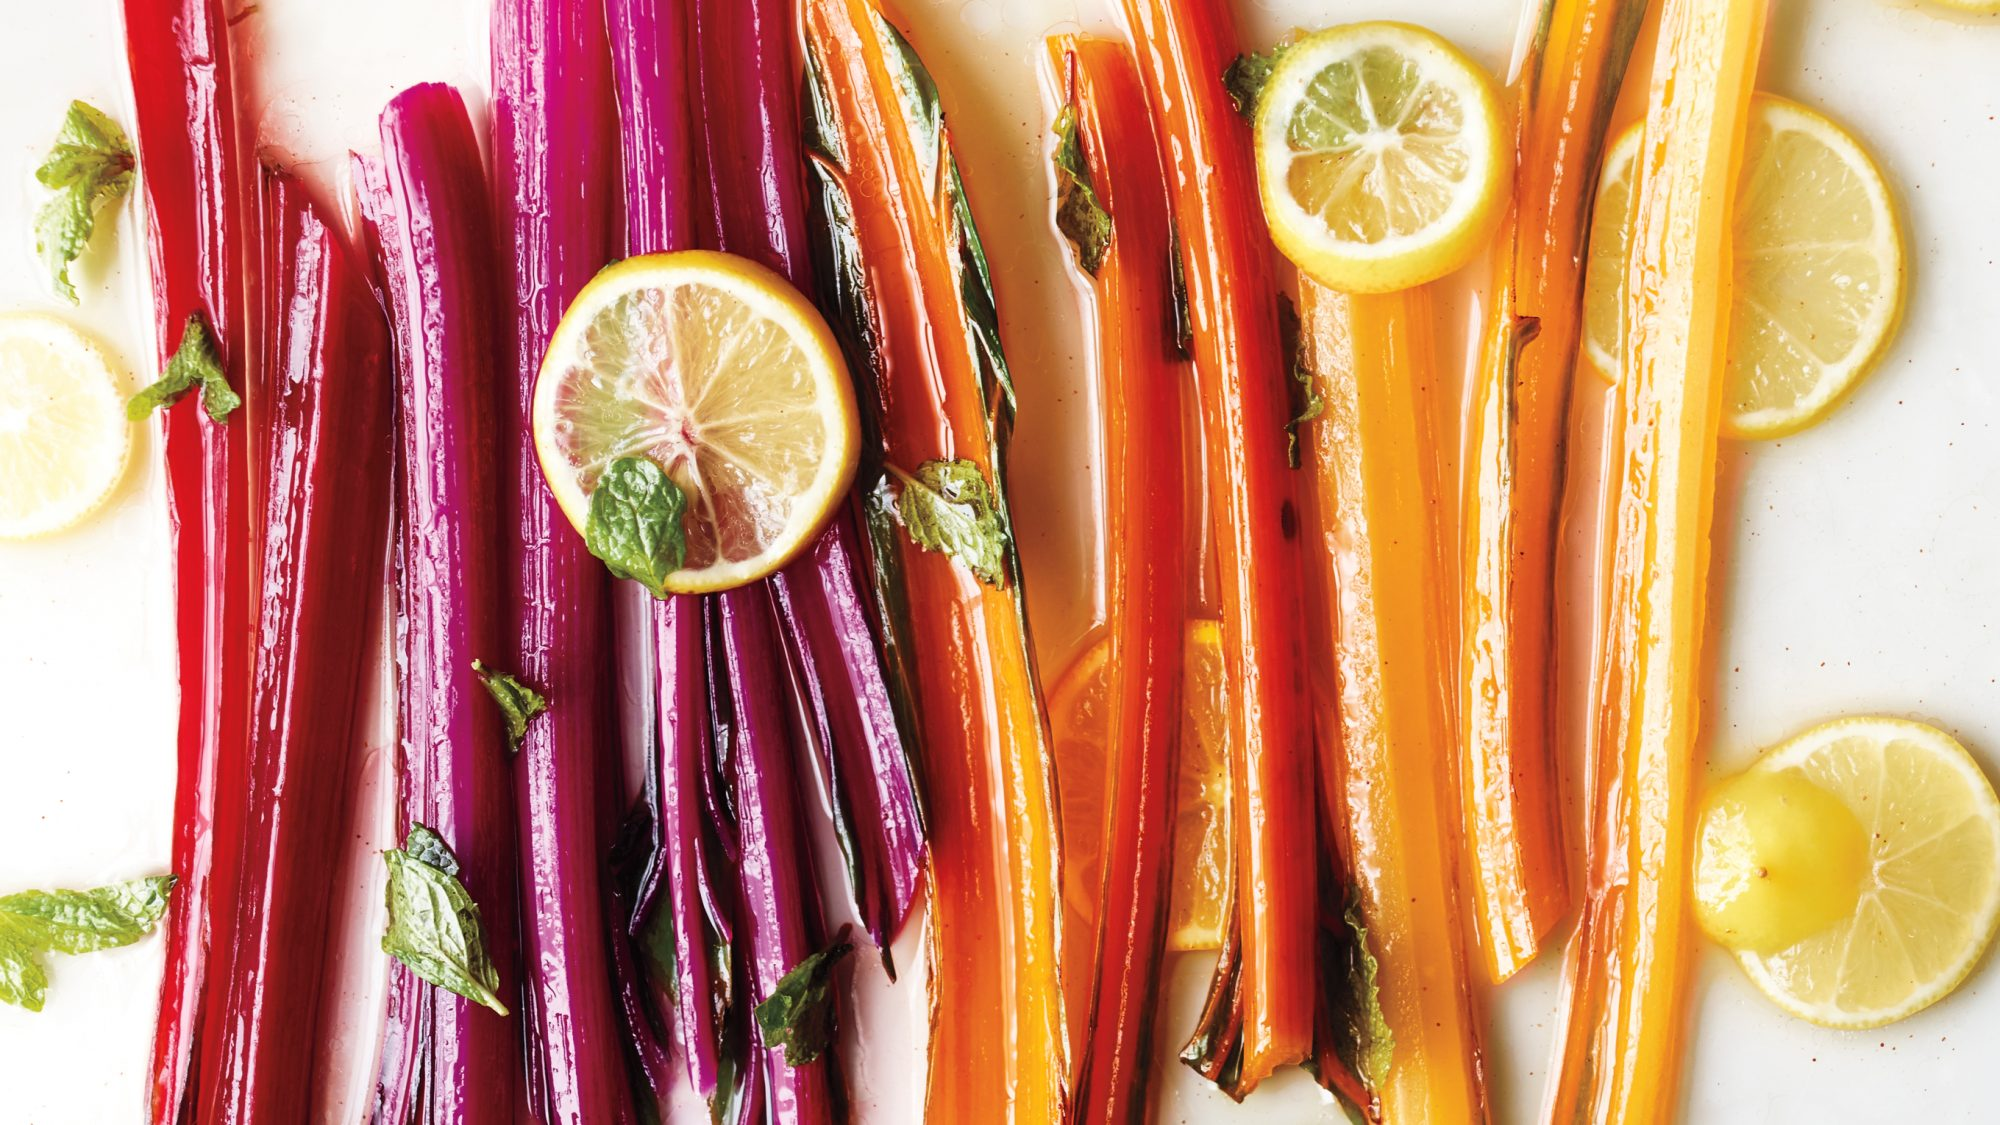 cooked Swiss chard stems in rainbow colors with lemon slices